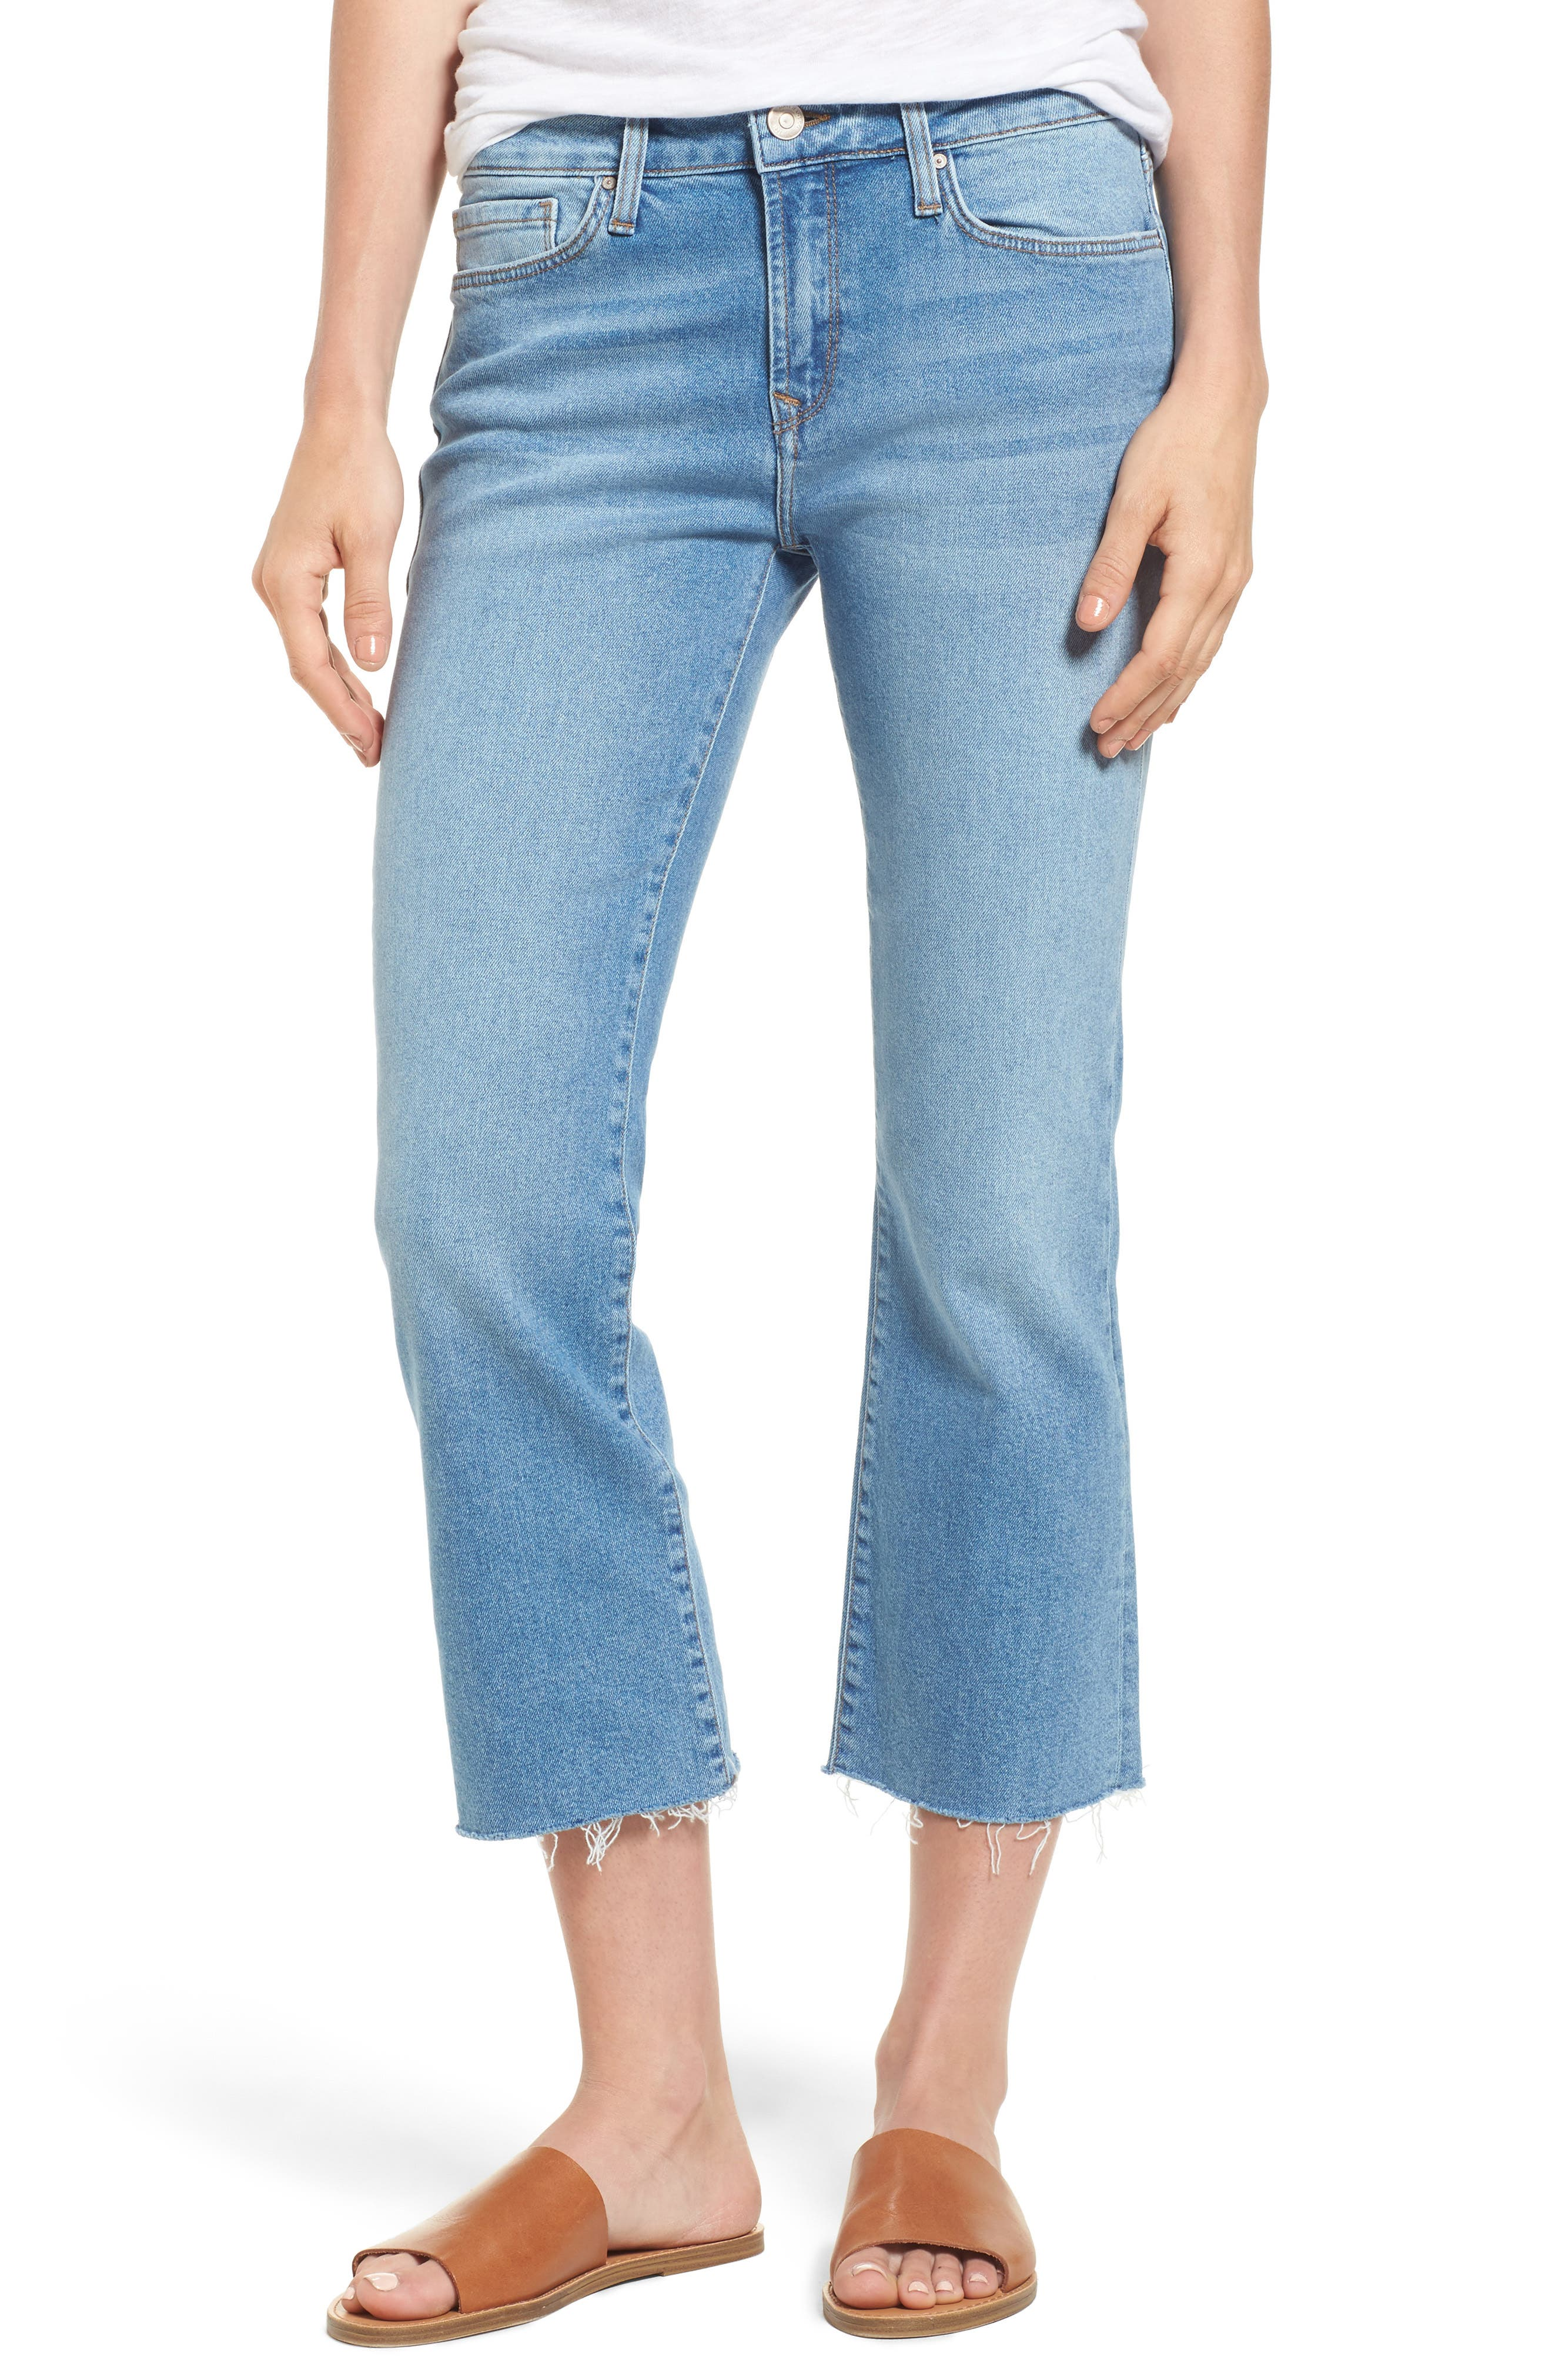 Anika Stretch Crop Jeans,                         Main,                         color, Light Used Retro